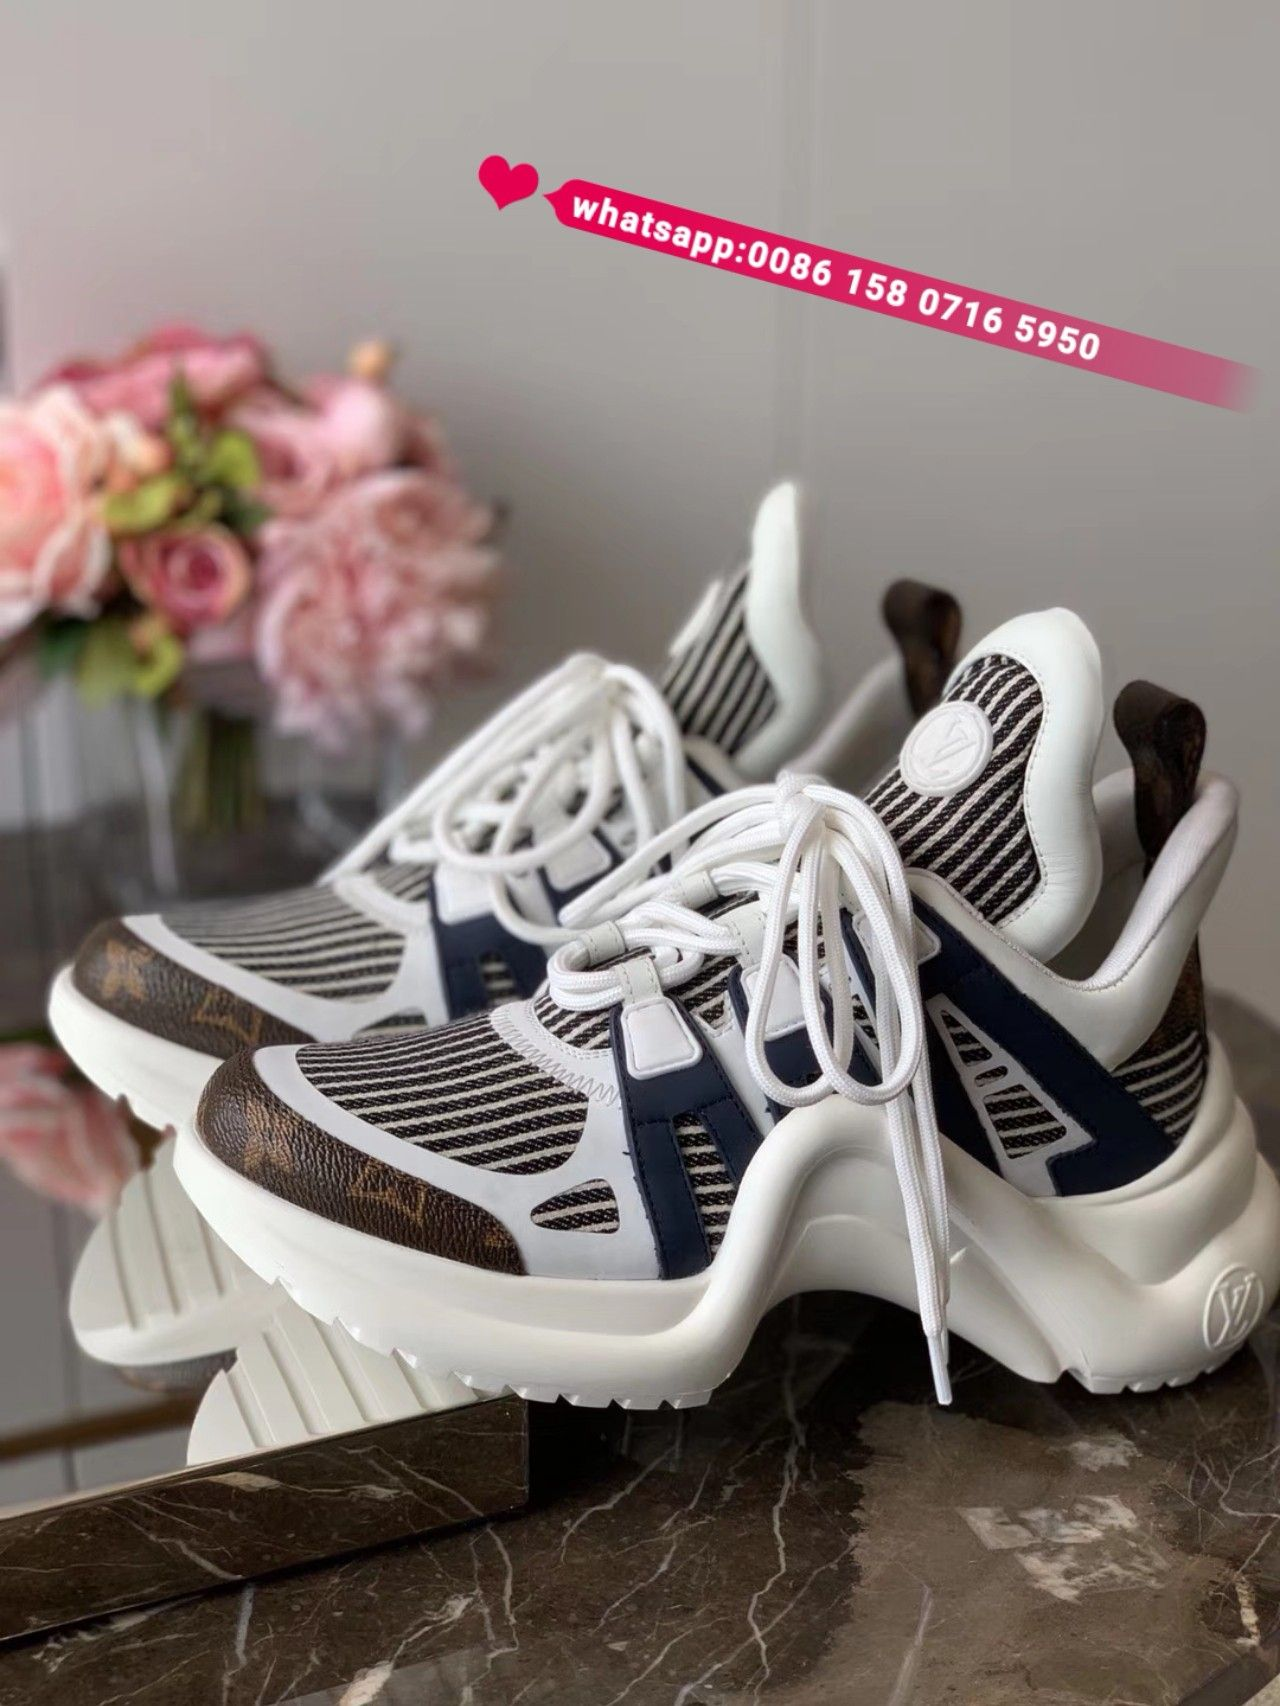 huge selection of 54077 40b16 newest Louis Vuitton archlight sneakers women shoes trainers